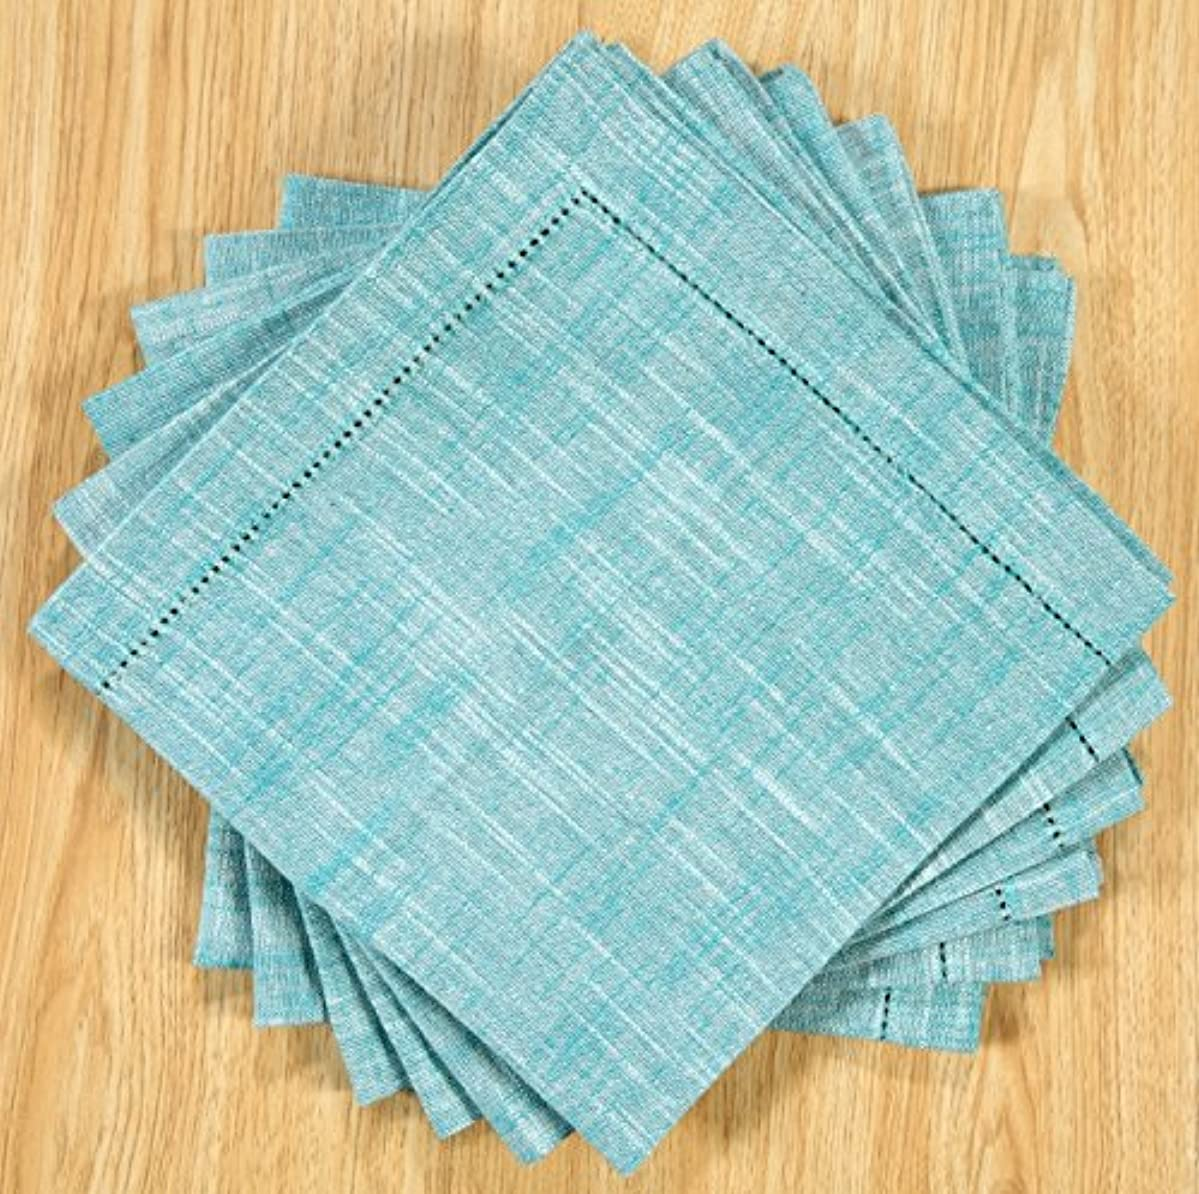 6Pack Slub Cotton Chambray Hemstitched Dinner Napkins-18x18- Teal White